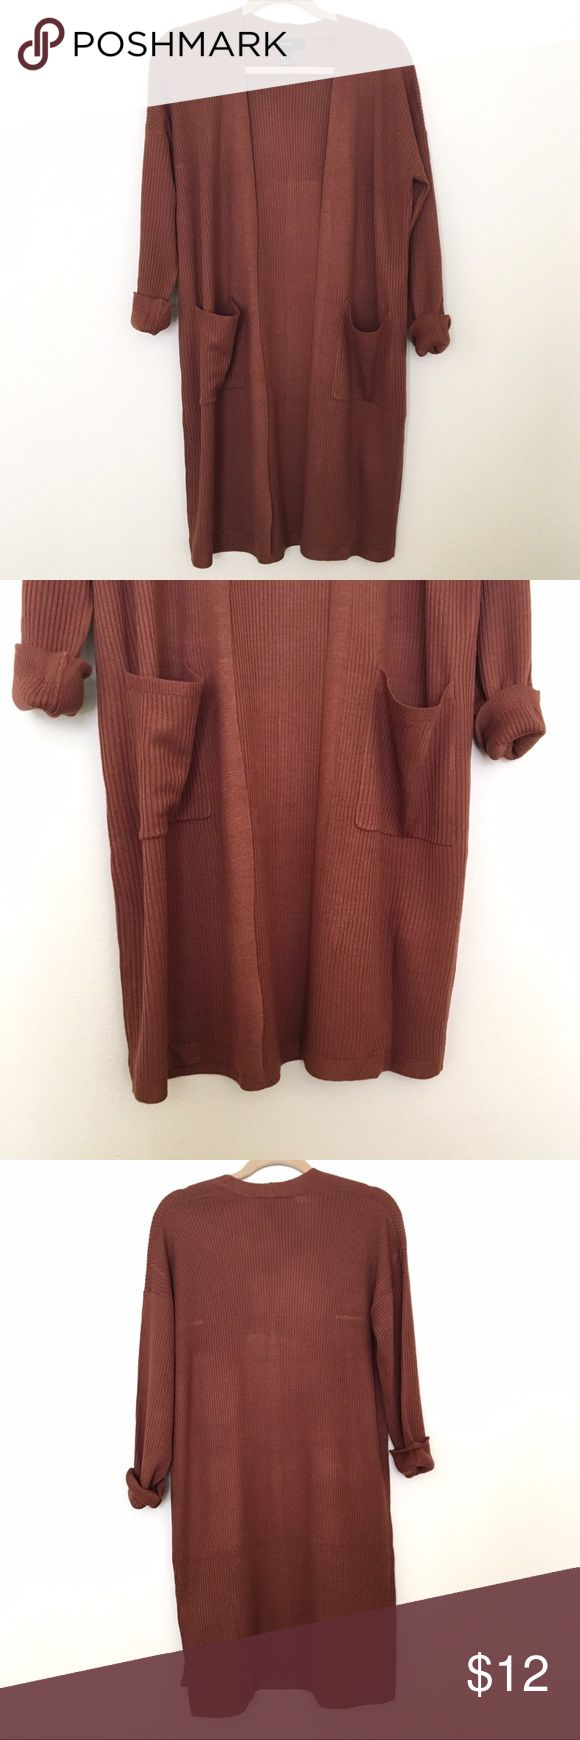 Forever 21 Open-Front Longline Cardigan NWOT New Without Tags! Open-front Longline Cardigan from Forever 21. Size Small. Rust colored. Never worn, no damage or flaws Forever 21 Sweaters Cardigans